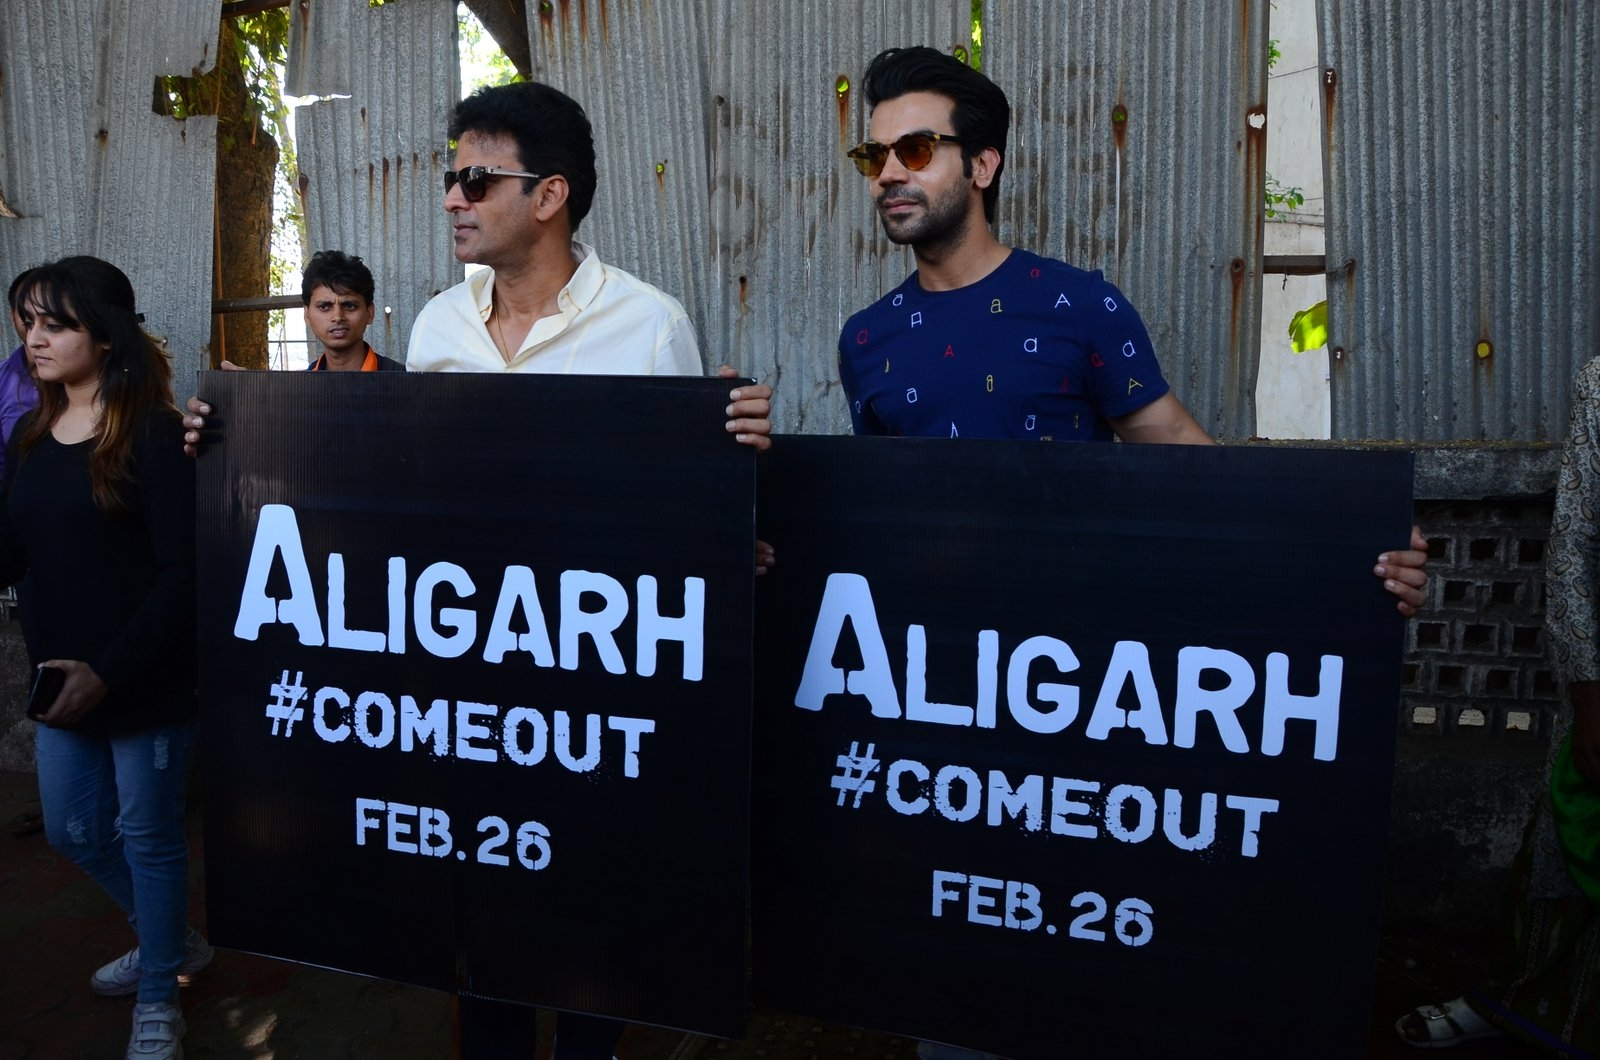 Don't litter Mumbai with film posters, say 'Aligarh' actors, director